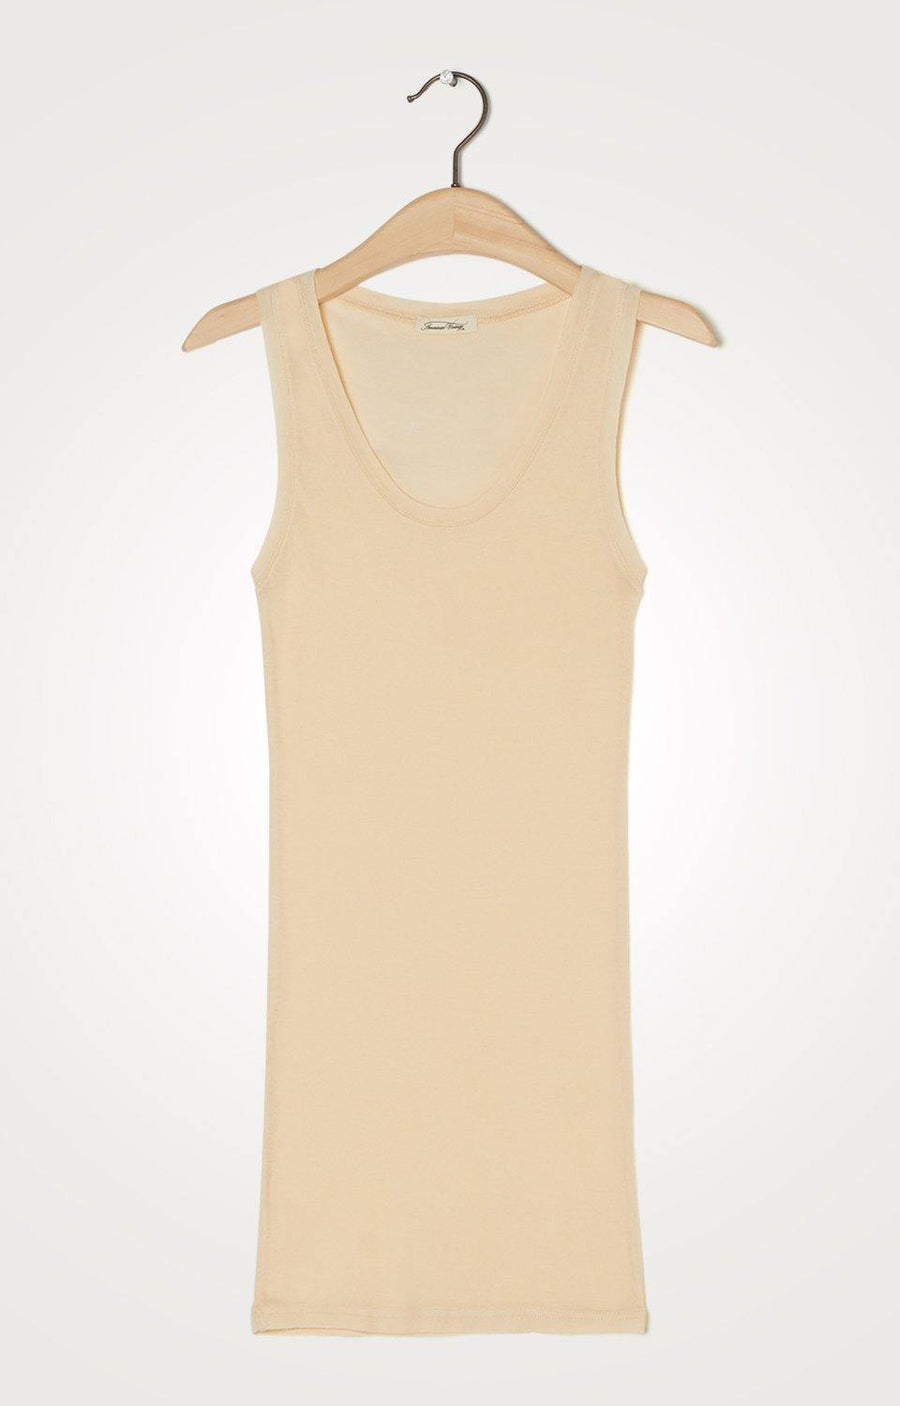 Amv Tank Top Massachusetts Beige-Rose